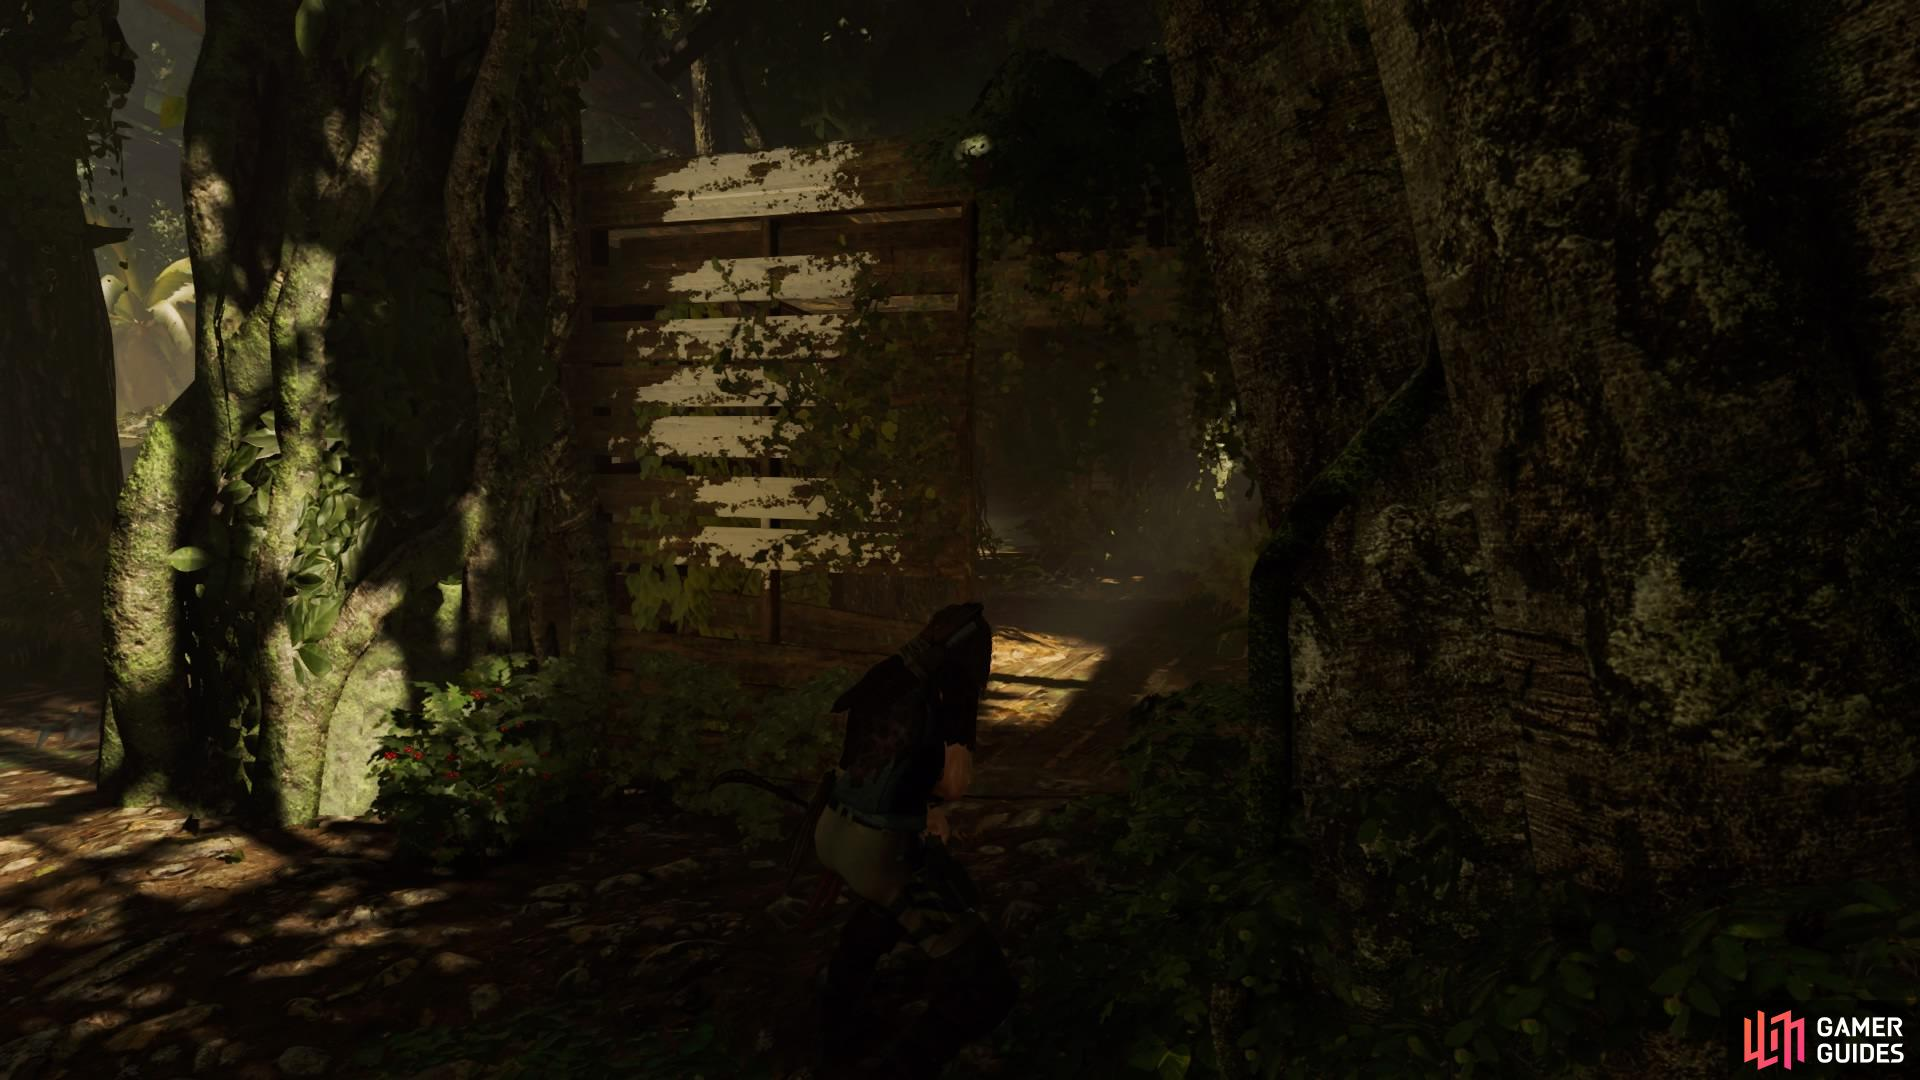 Run through the wooden structure to take out the second enemy